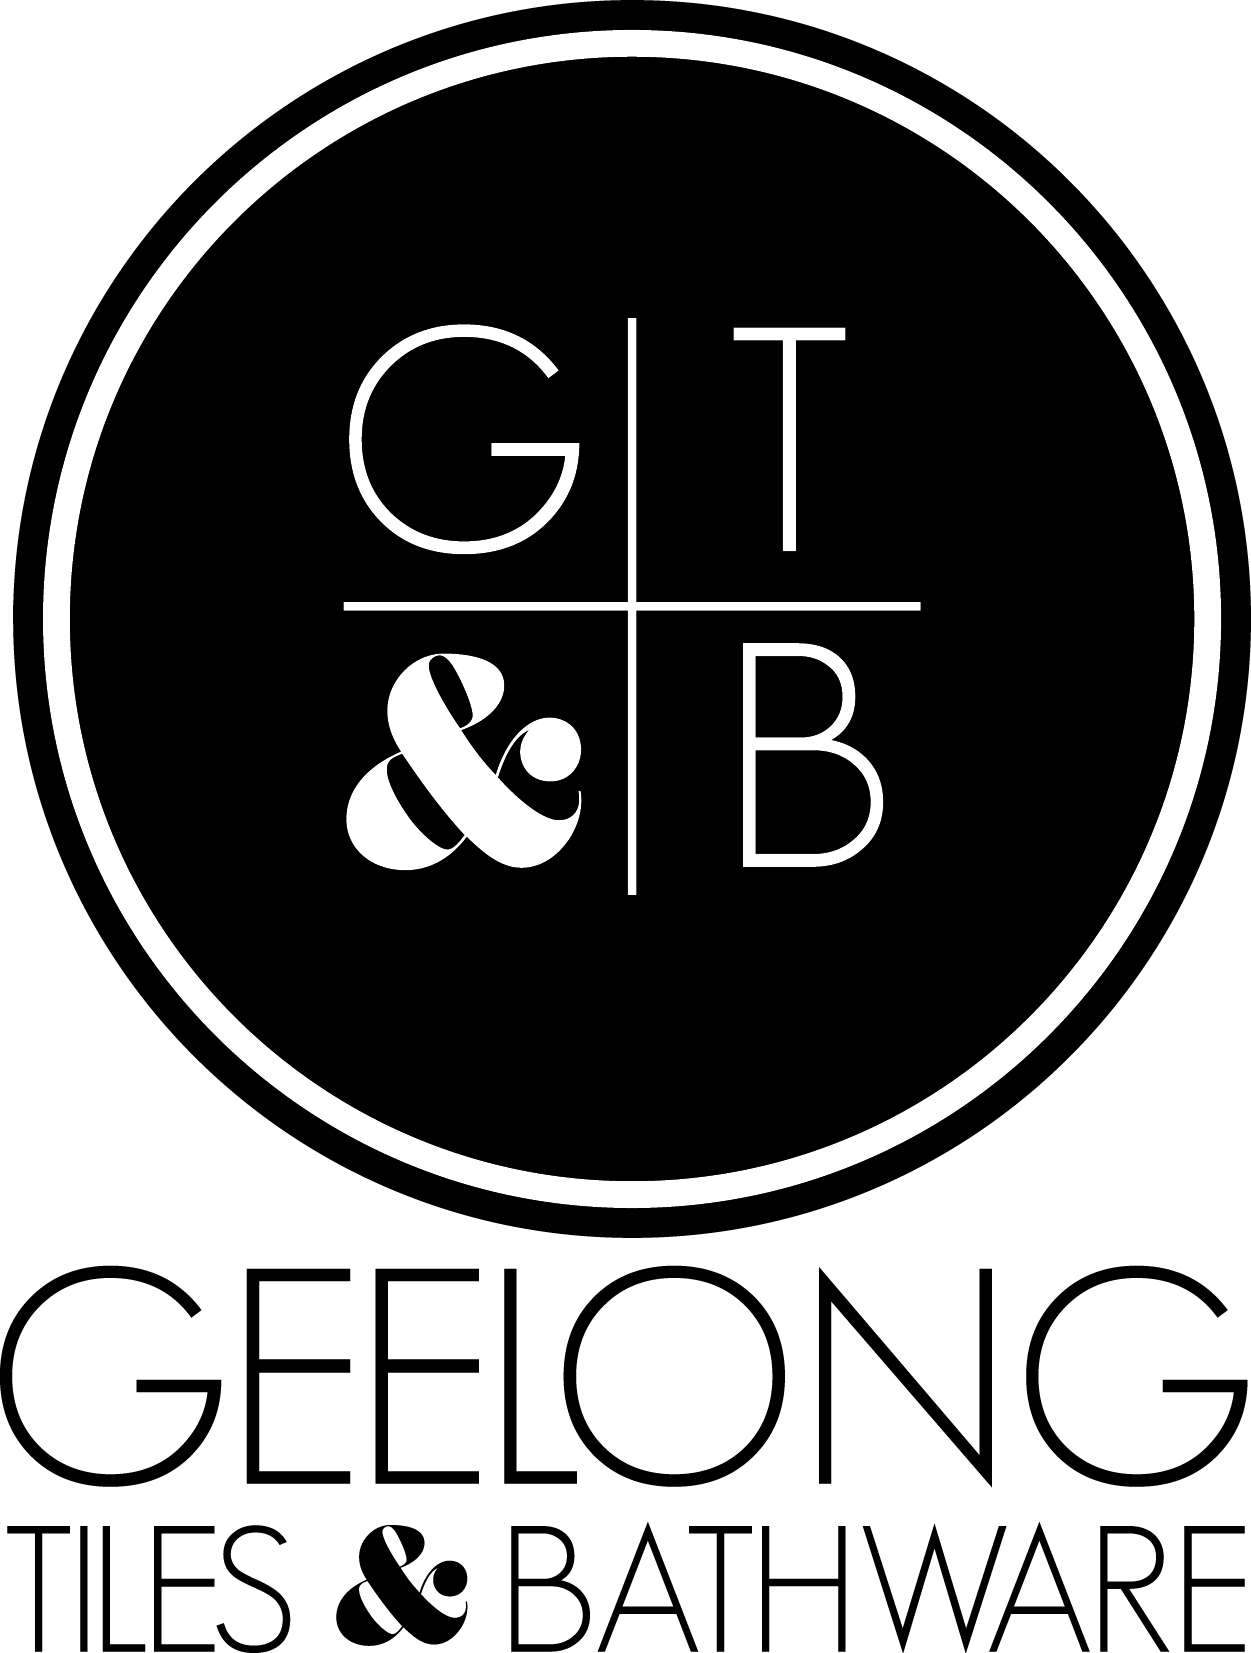 GEELONG TILES & BATHWARE